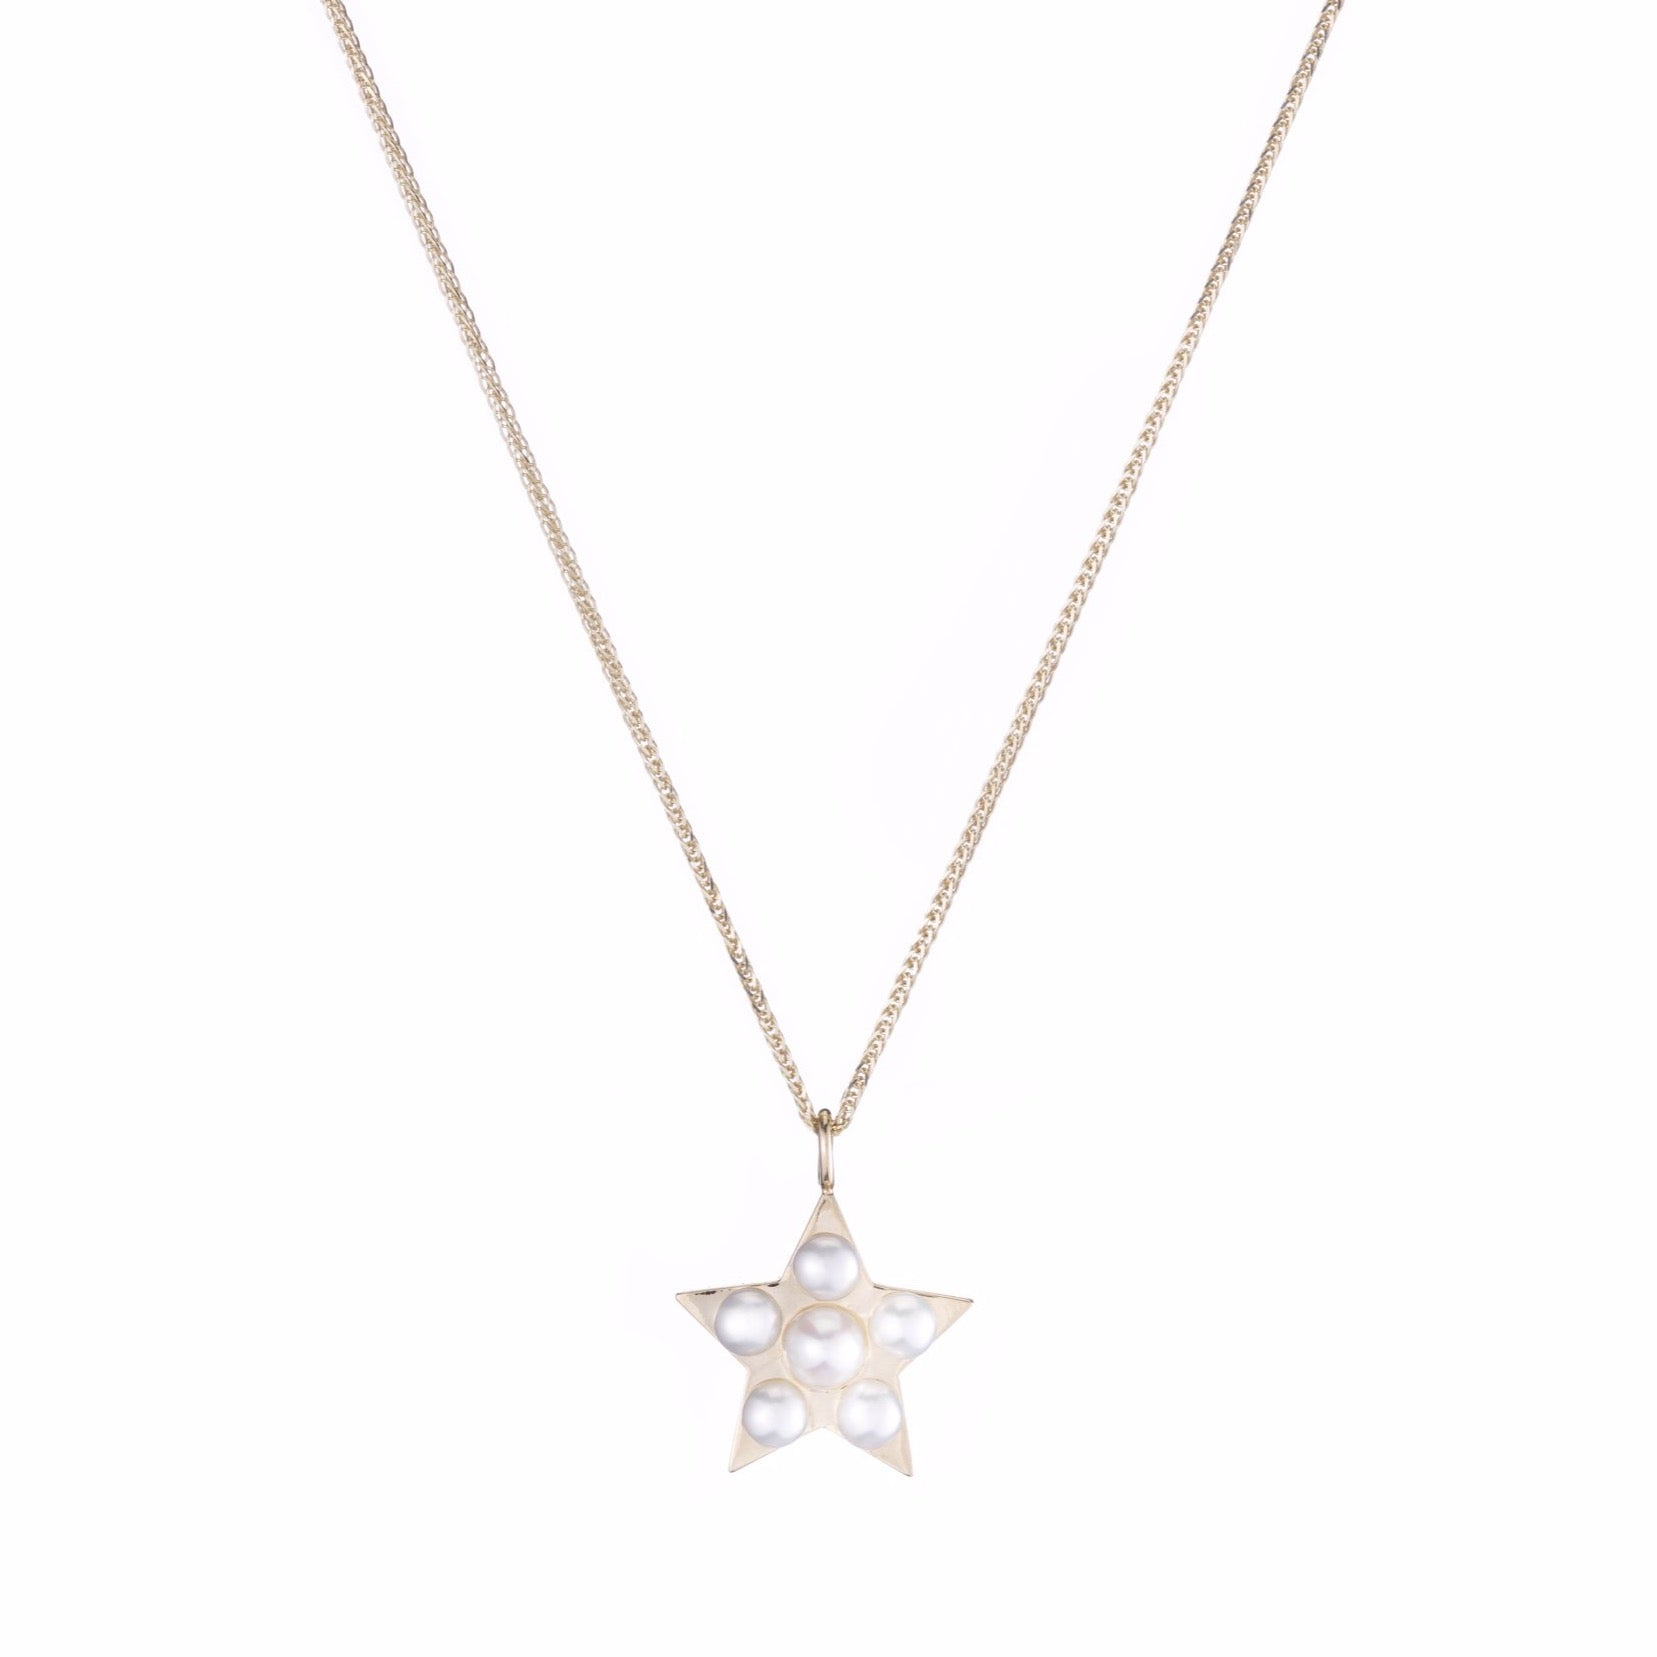 Lido Star Pearl Pendant Necklace